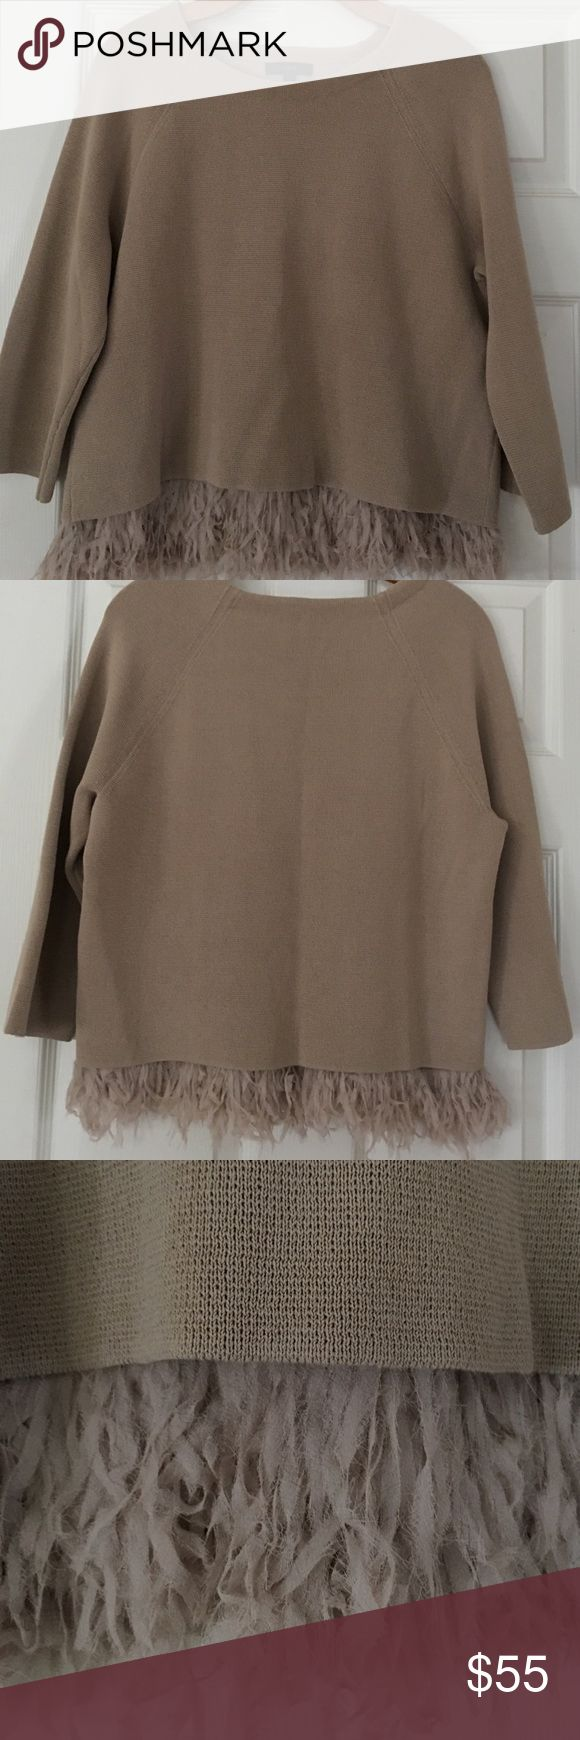 J Crew Collection Chiffon Fringe Sweater Flirty and fun! Finished with a panel of swishy, laser-cut chiffon fringe, this sweater is the definition of party! The chiffon is attached to a camisole- like layer that slips beneath the cotton outer layer. Three quarter sleeves in a taupe almond colored gorgeous piece of delight! The piece can stand alone with white or black jeans or go-for-it statement earrings with a pencil skirt. Worn once in perfect condition. J. Crew Sweaters Crew & Scoop…